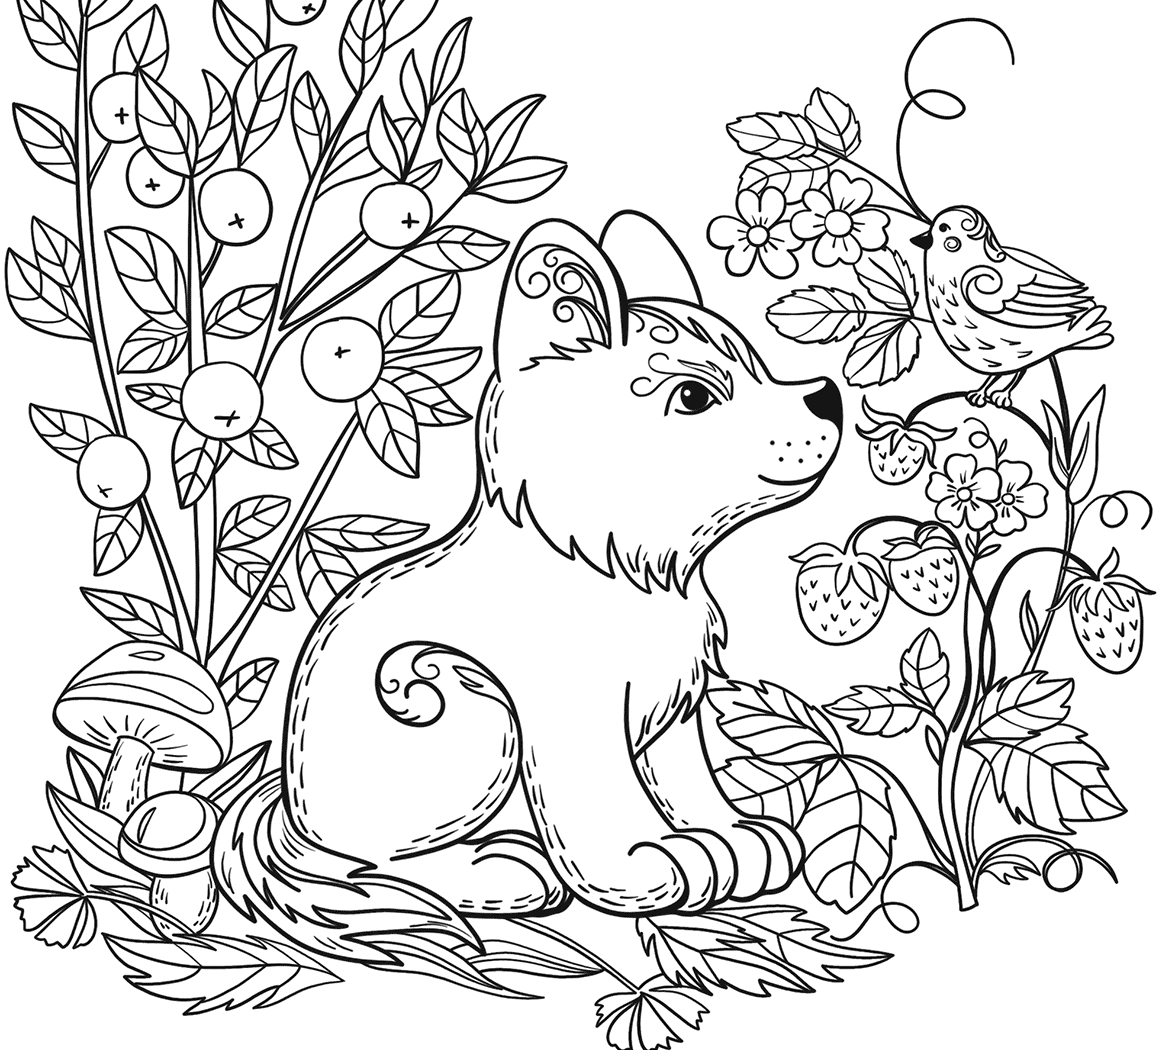 www coloring pages of animals cute coloring pages getcoloringpagescom coloring animals of www pages